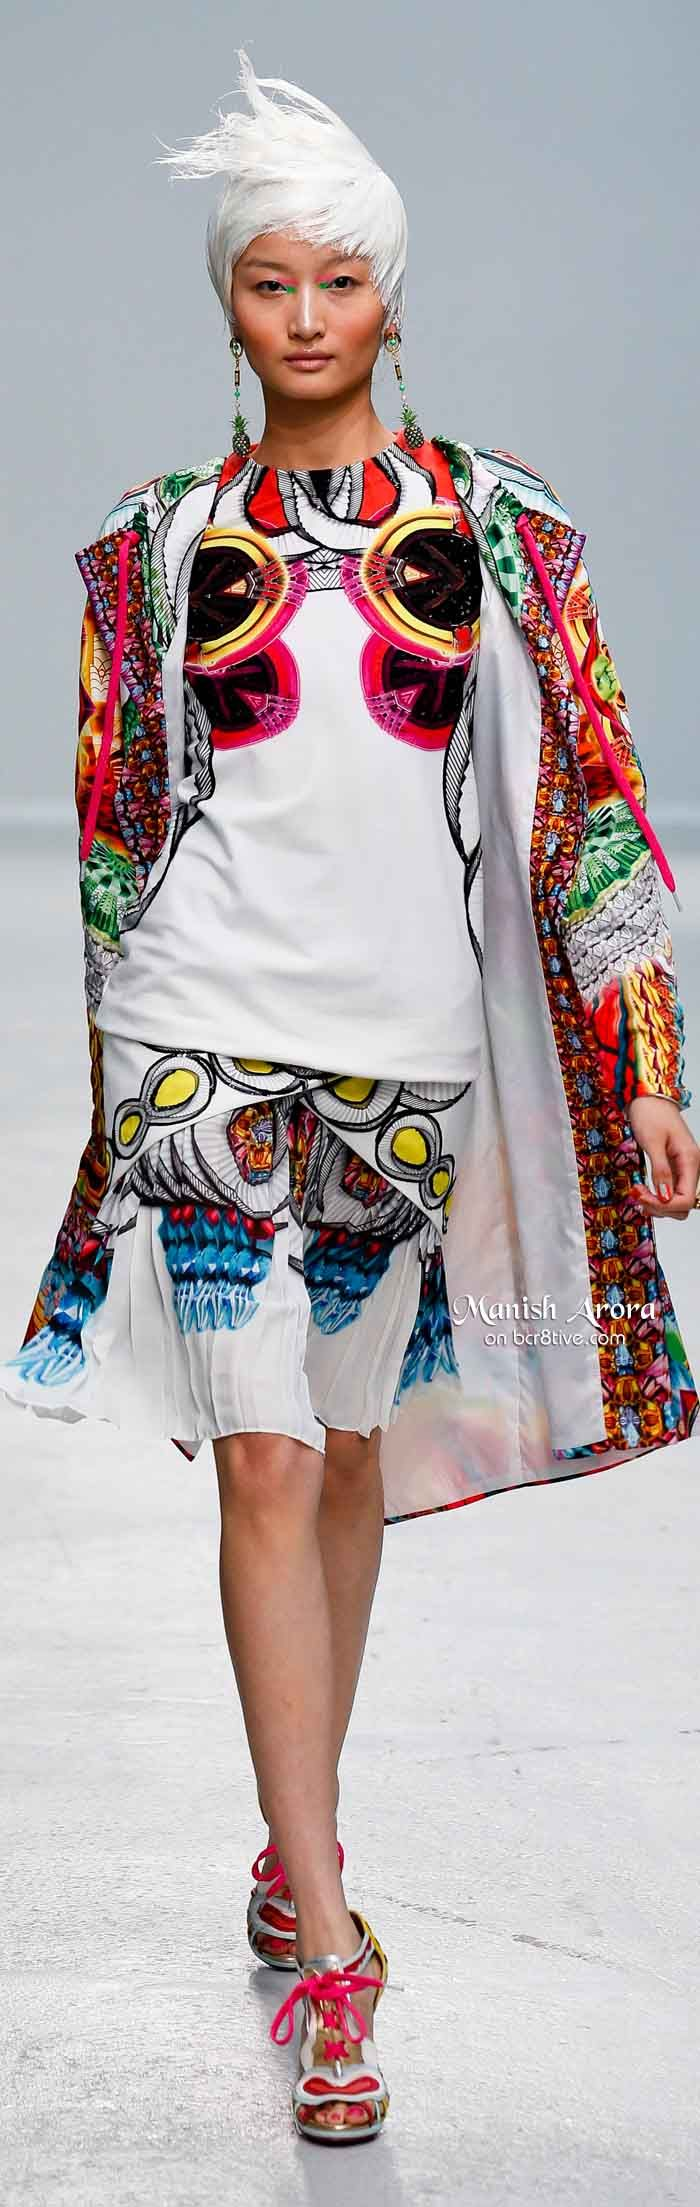 2014 urban fashion trends for women - Manish Arora Spring 2014